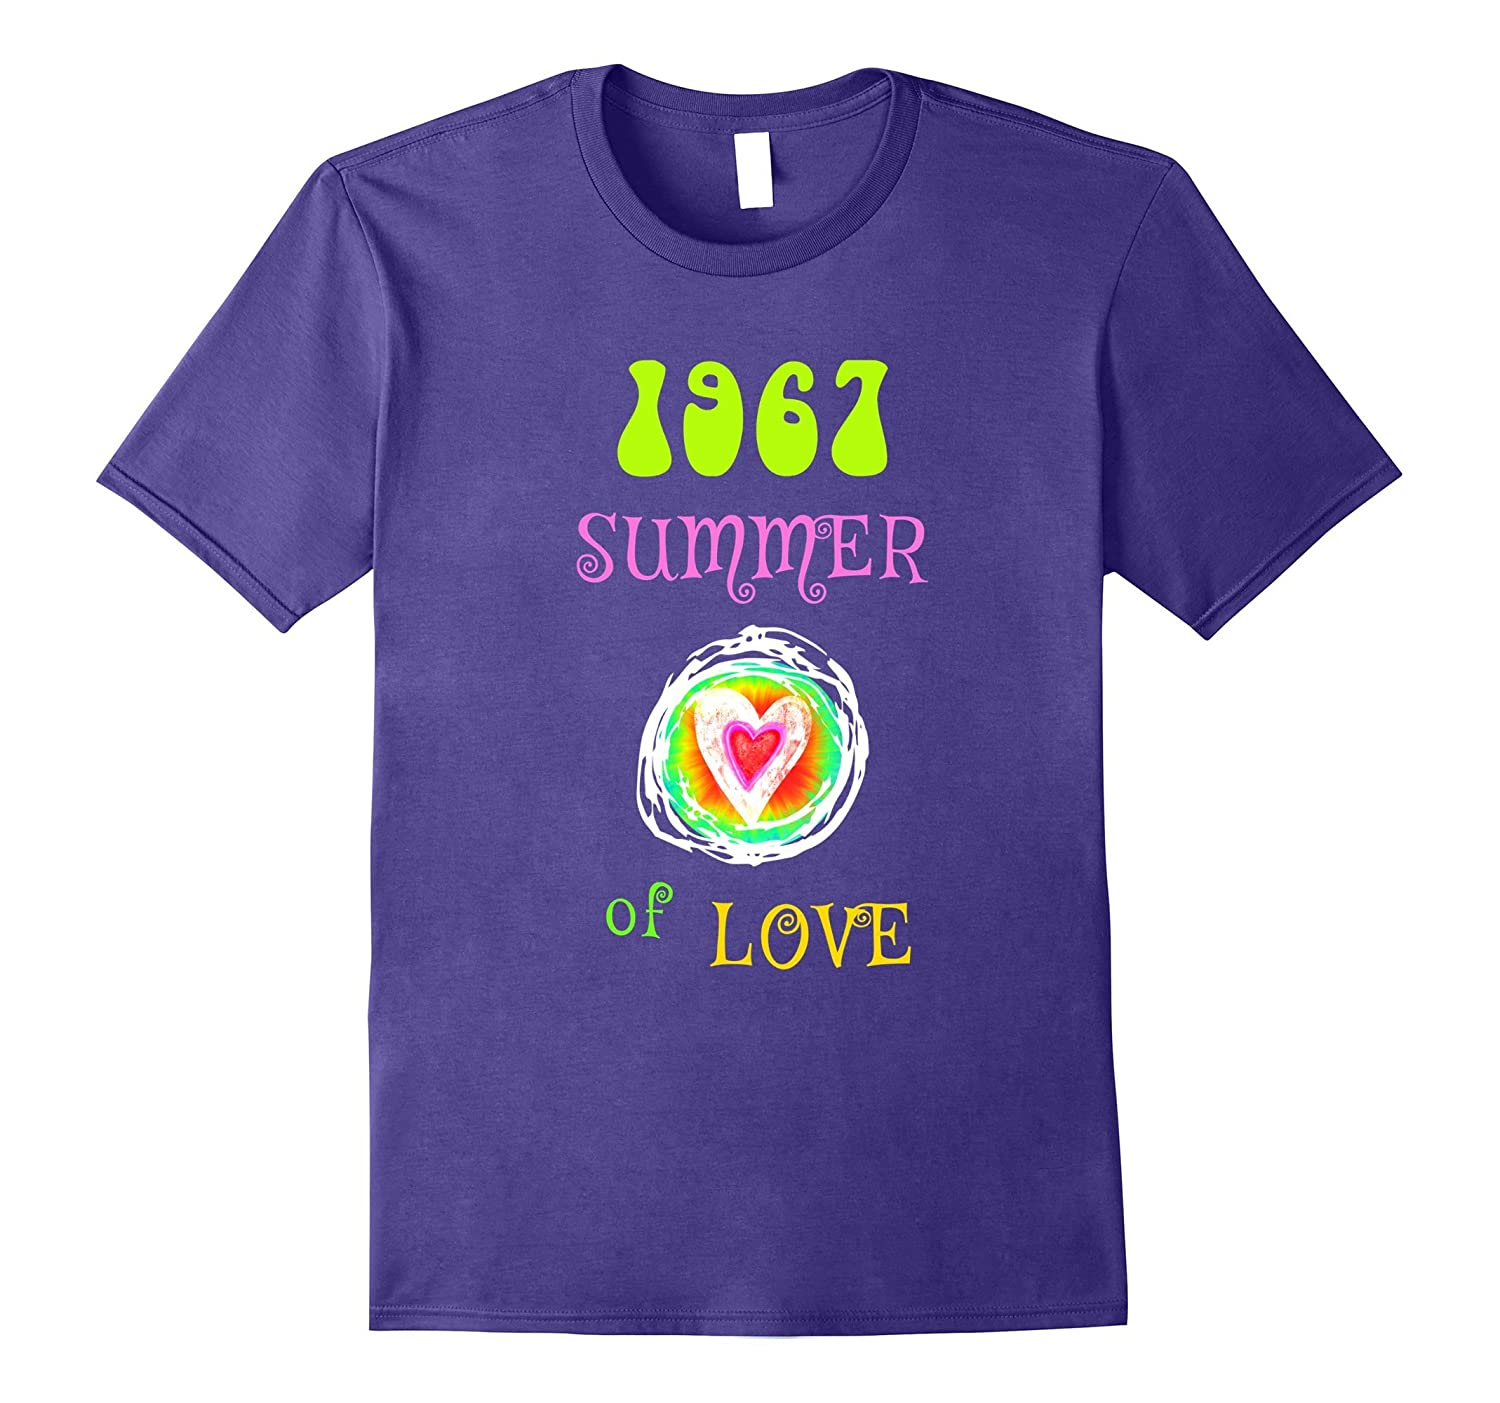 1967 Summer of Love Hippie Heart T-shirt-CD